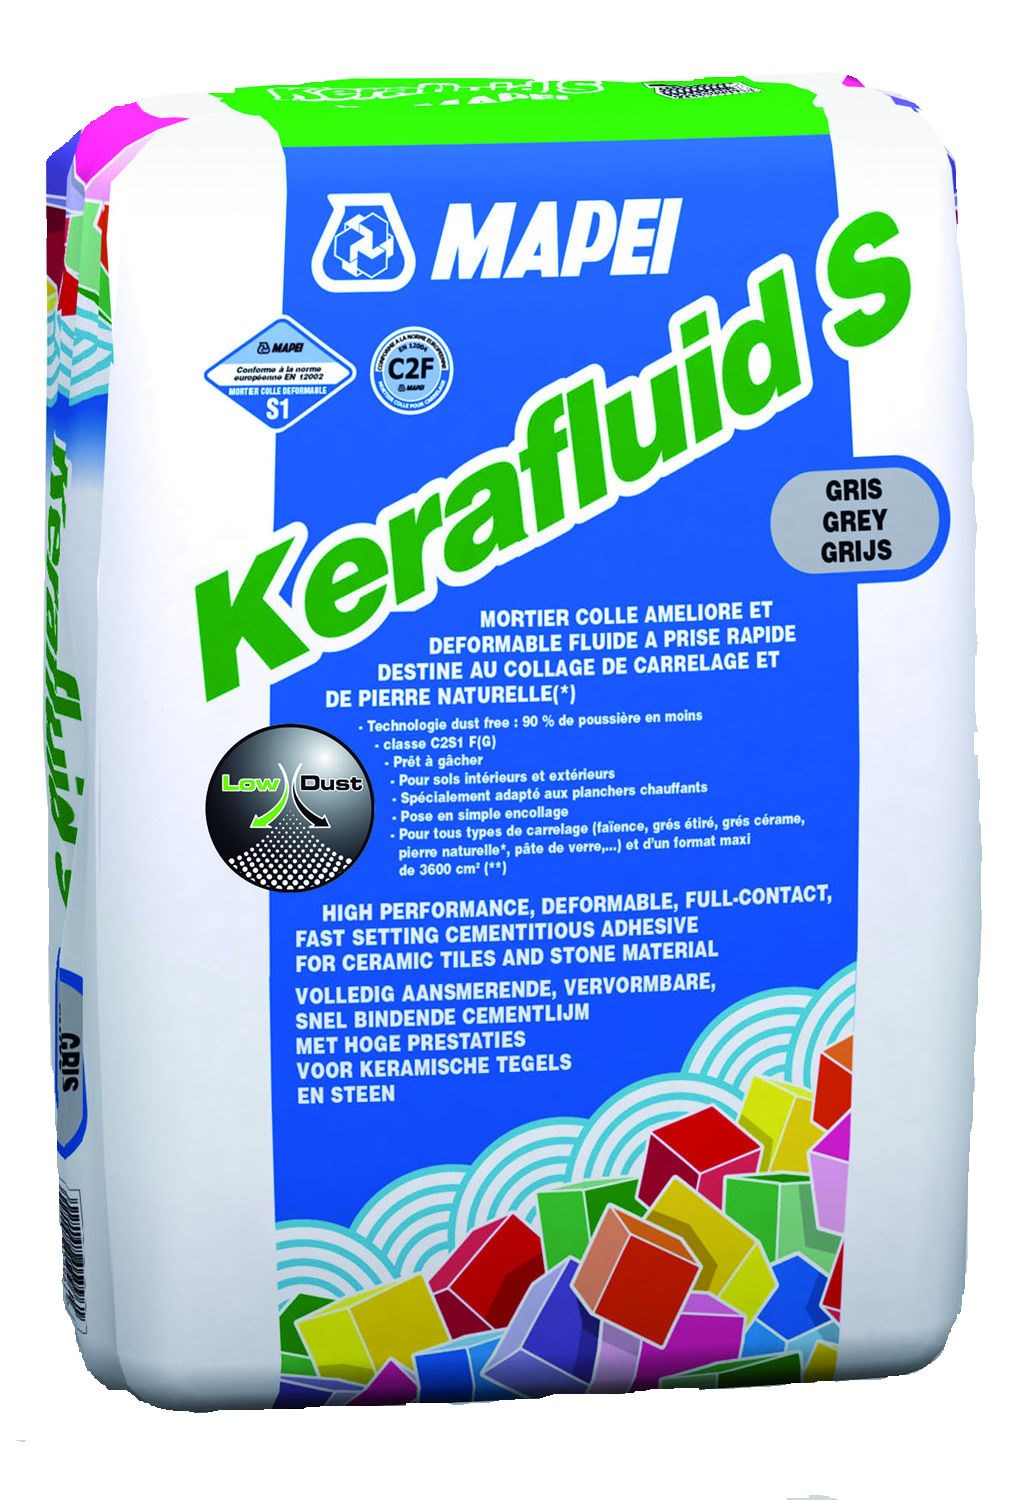 Mortier colle dformable pour carrelage c2 kerafluid s mapei for Carrelage qui colle